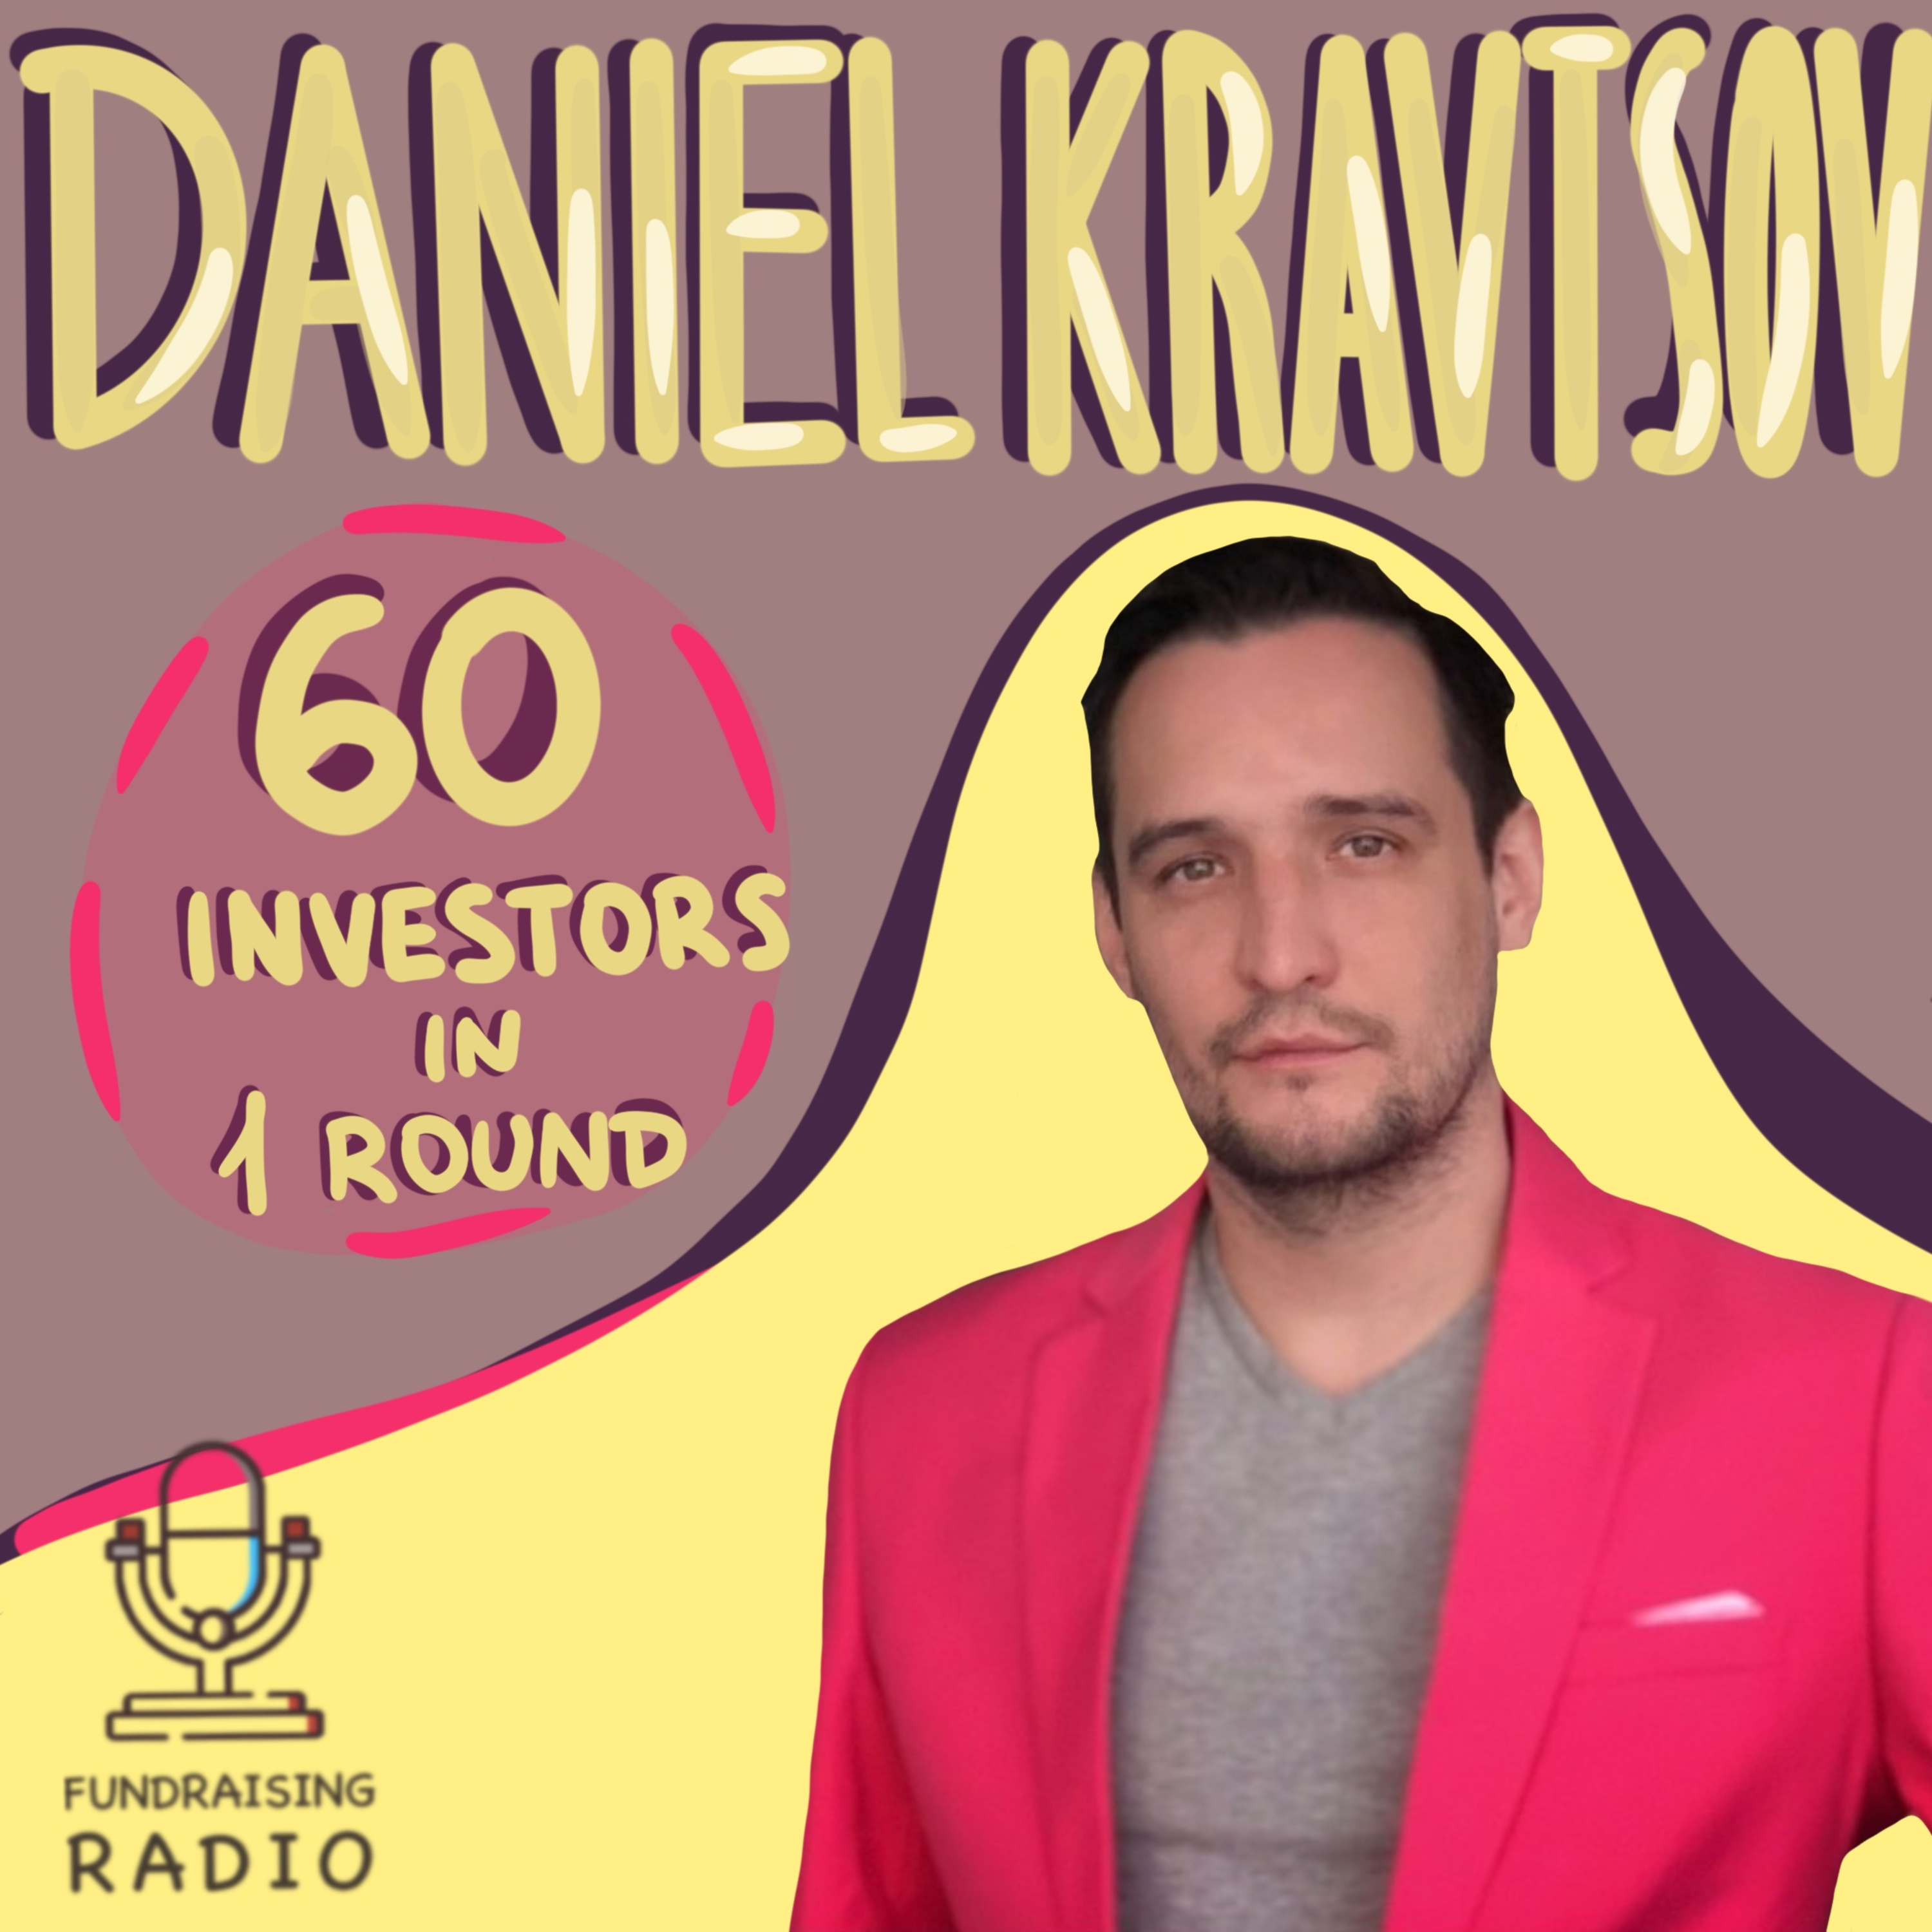 60 investors participating in one round - how was it done and why? By Daniel Kravtsov